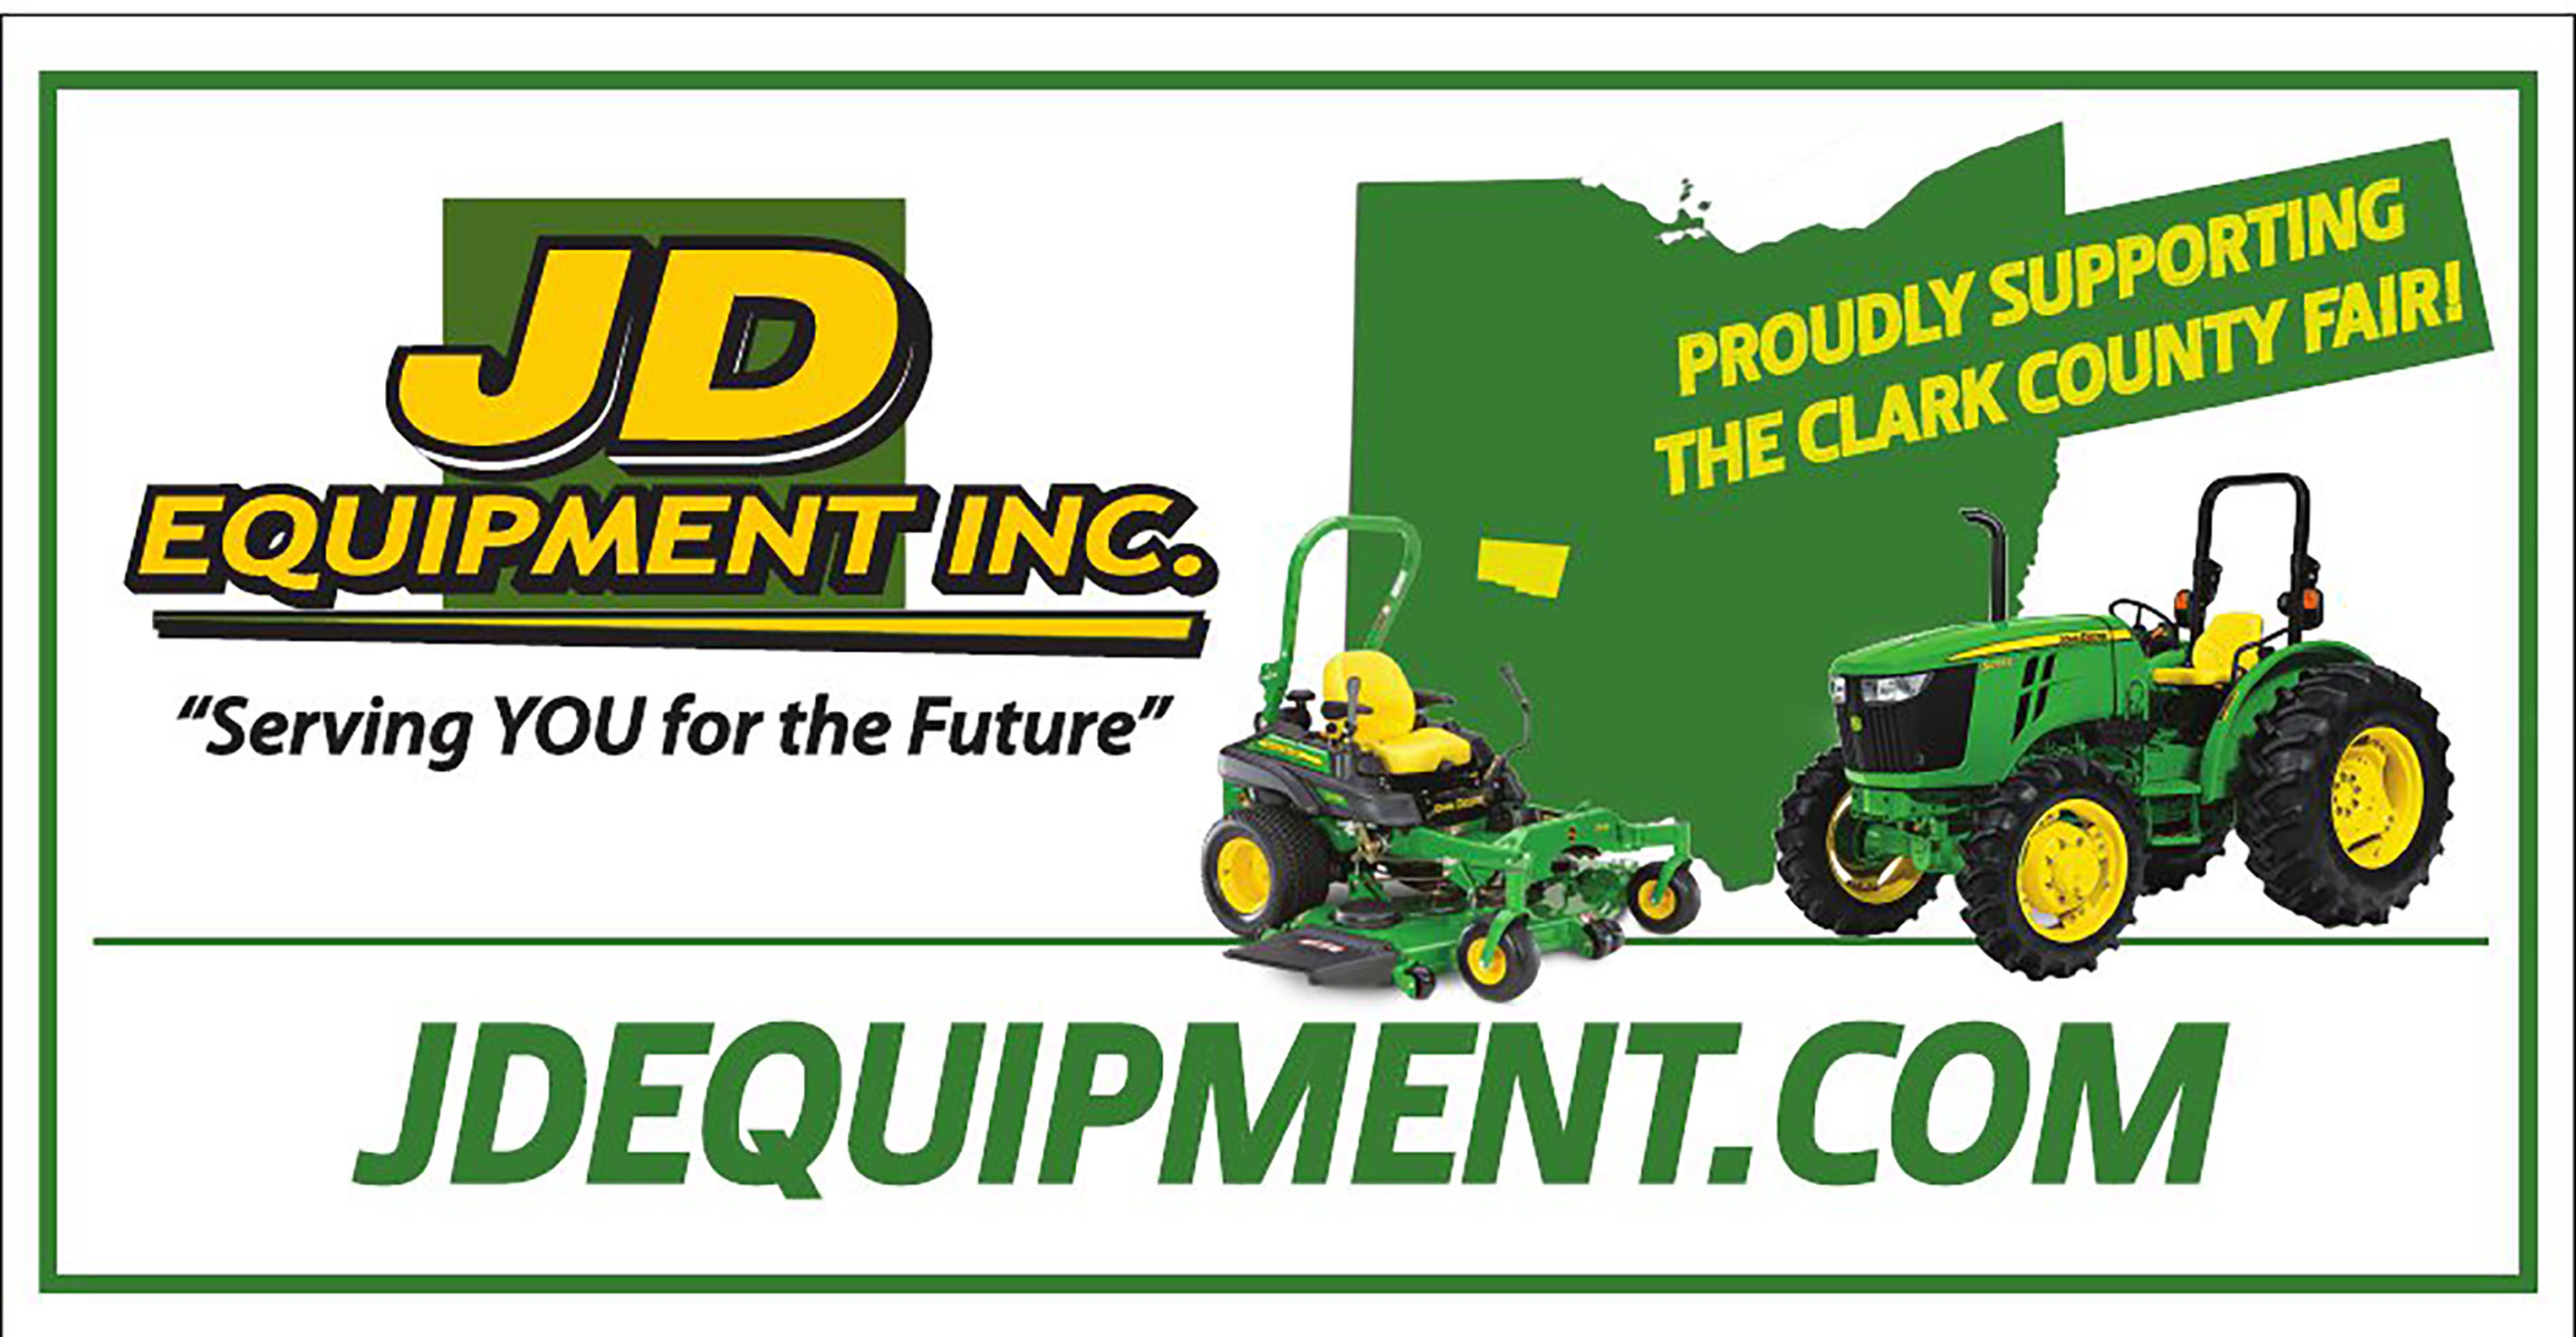 JD Equipment